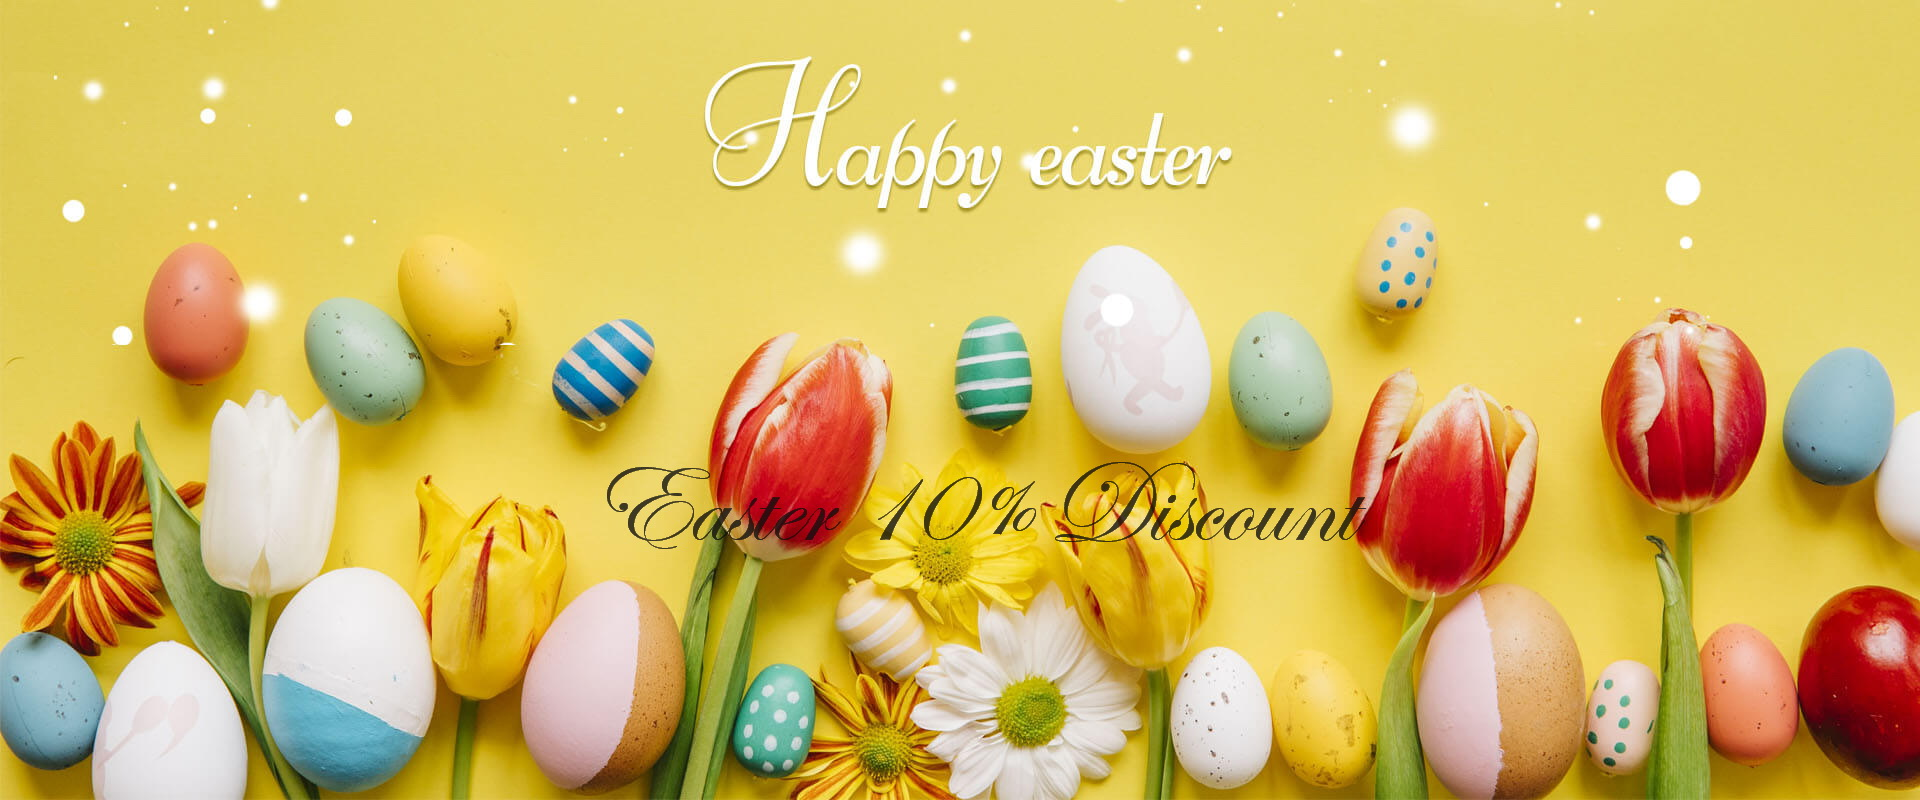 Easter promotion: 10% discount on everything